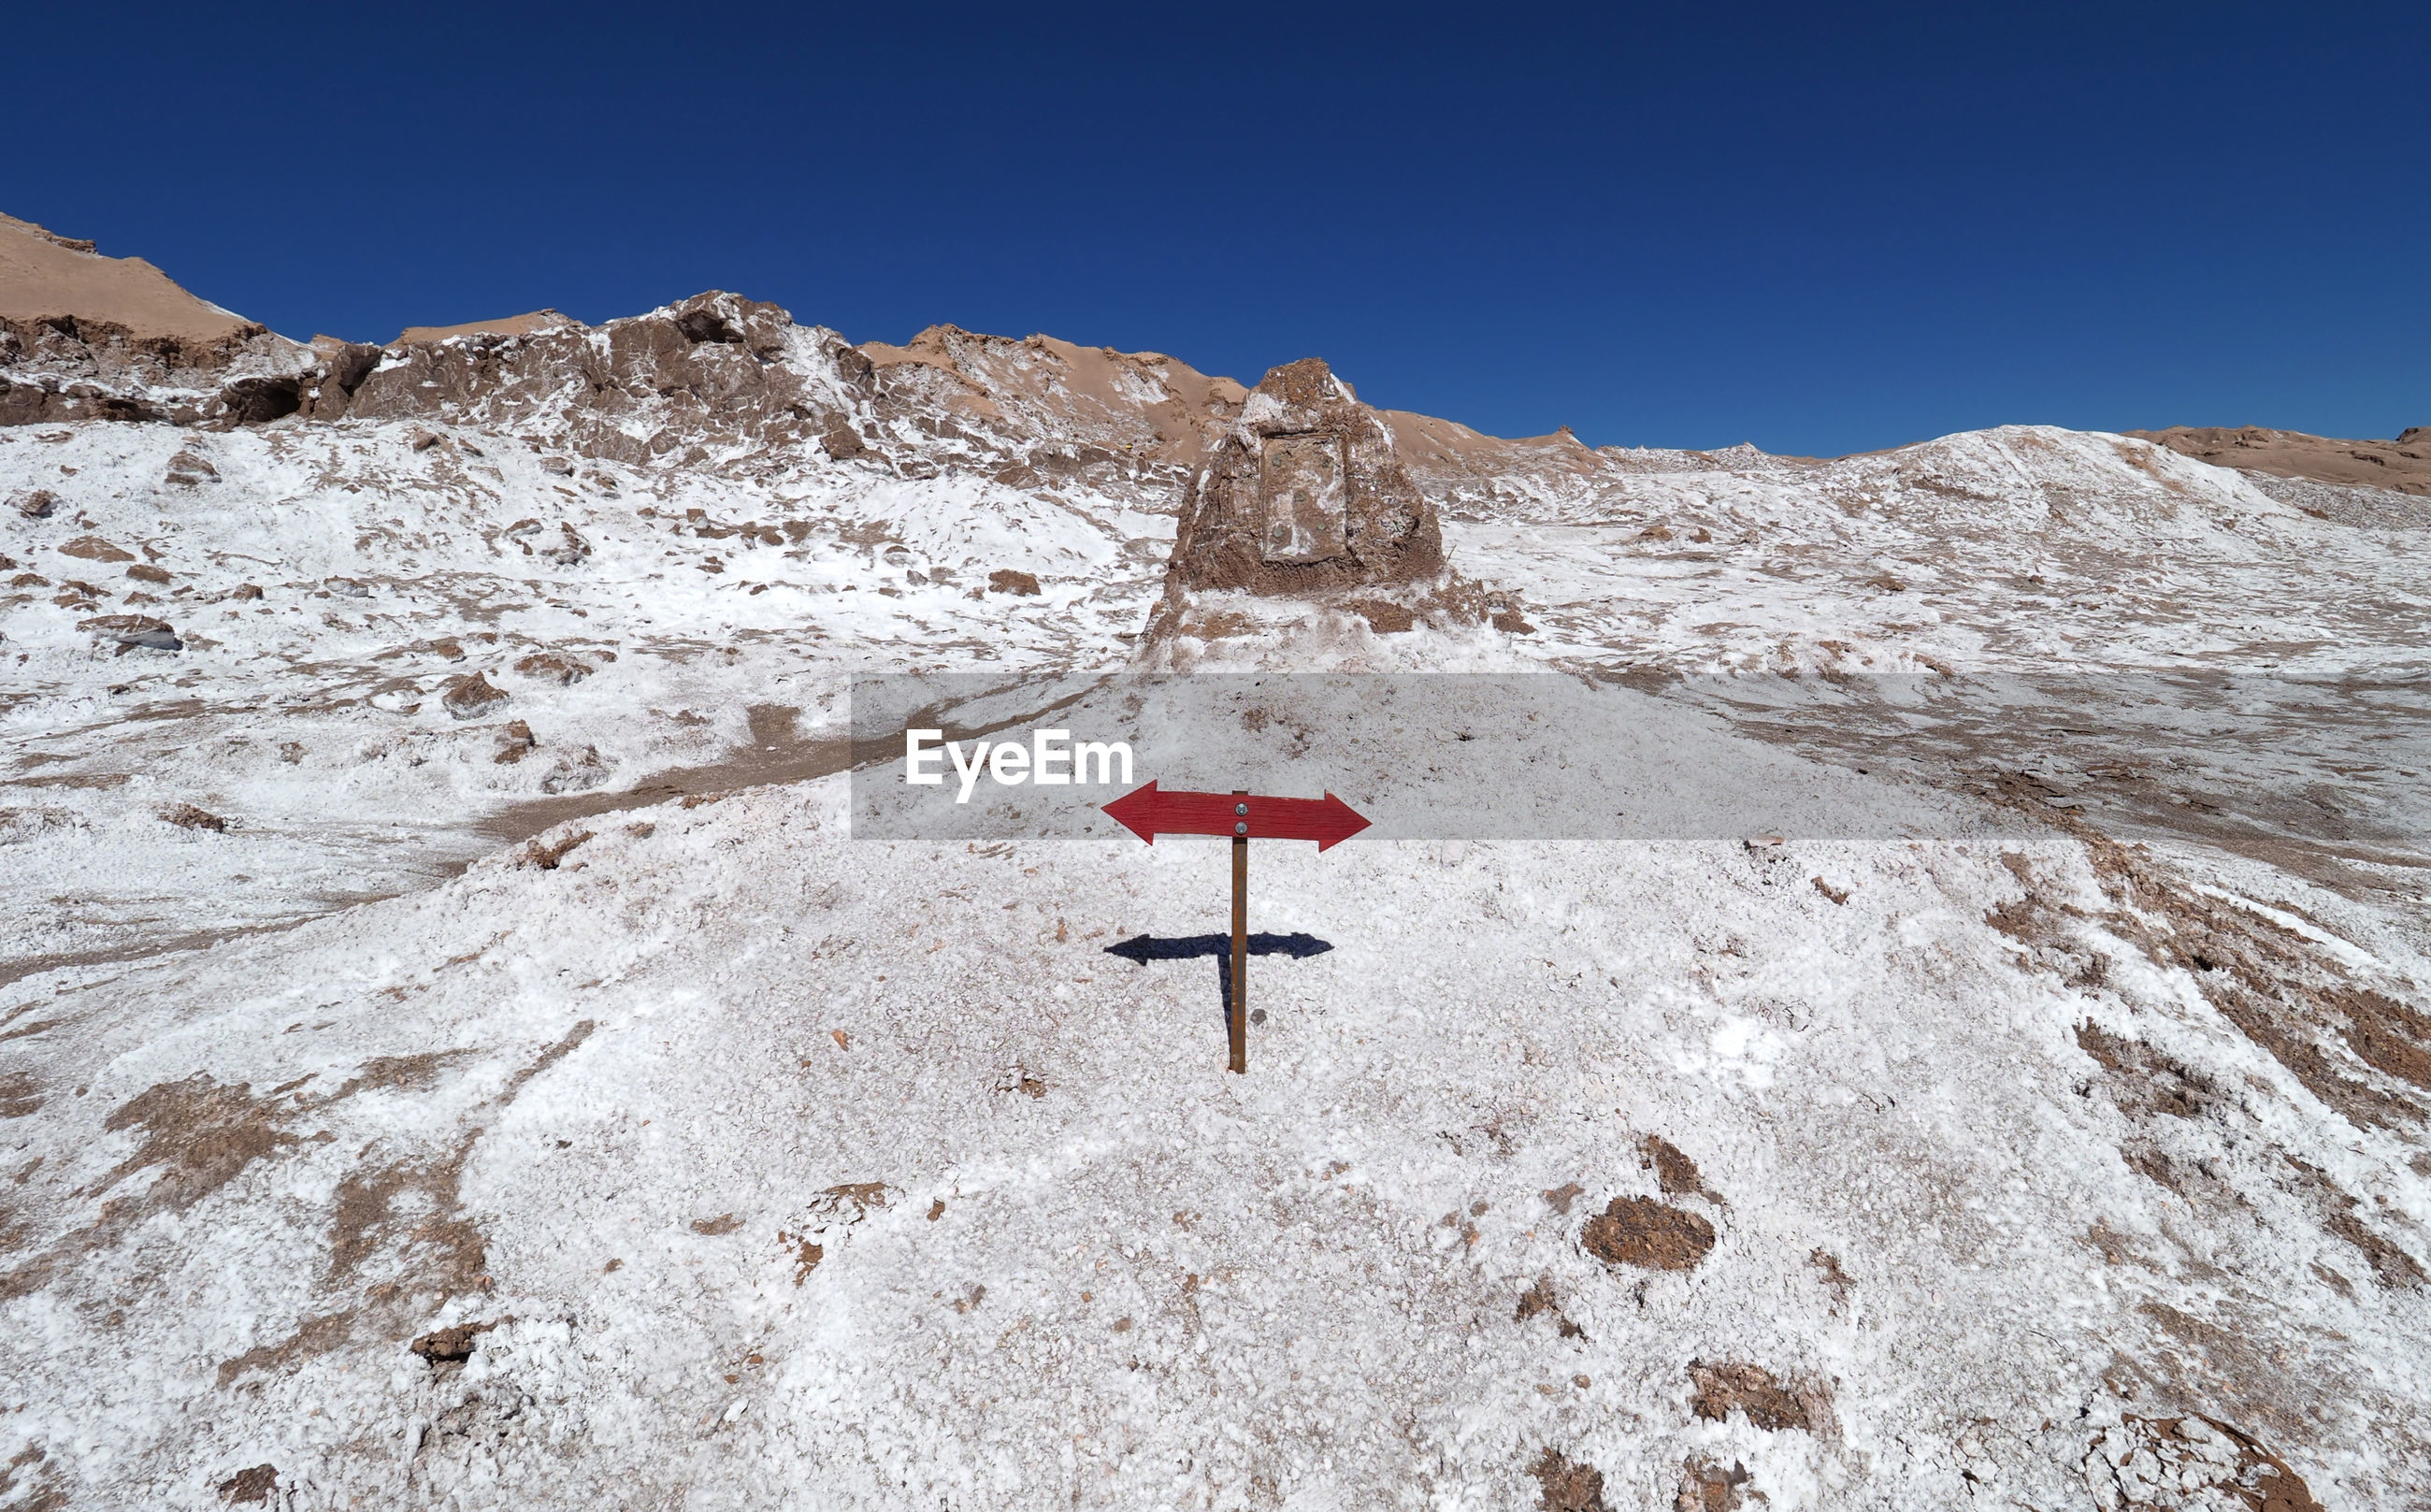 LOW ANGLE VIEW OF ROAD SIGN ON MOUNTAIN AGAINST SKY